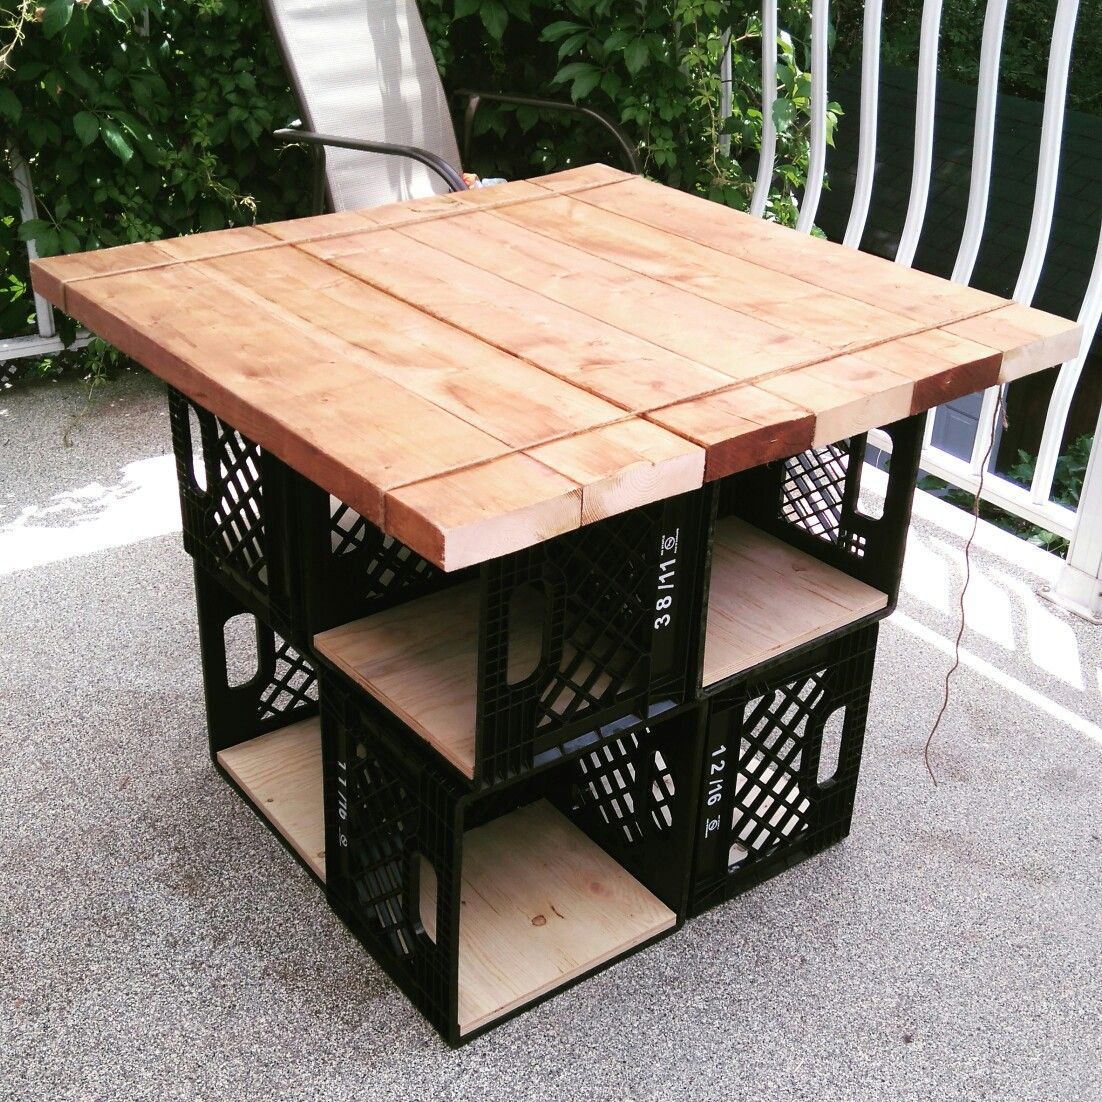 Milk crates Patio Table with storage | Wooden Furniture | Pinterest ...